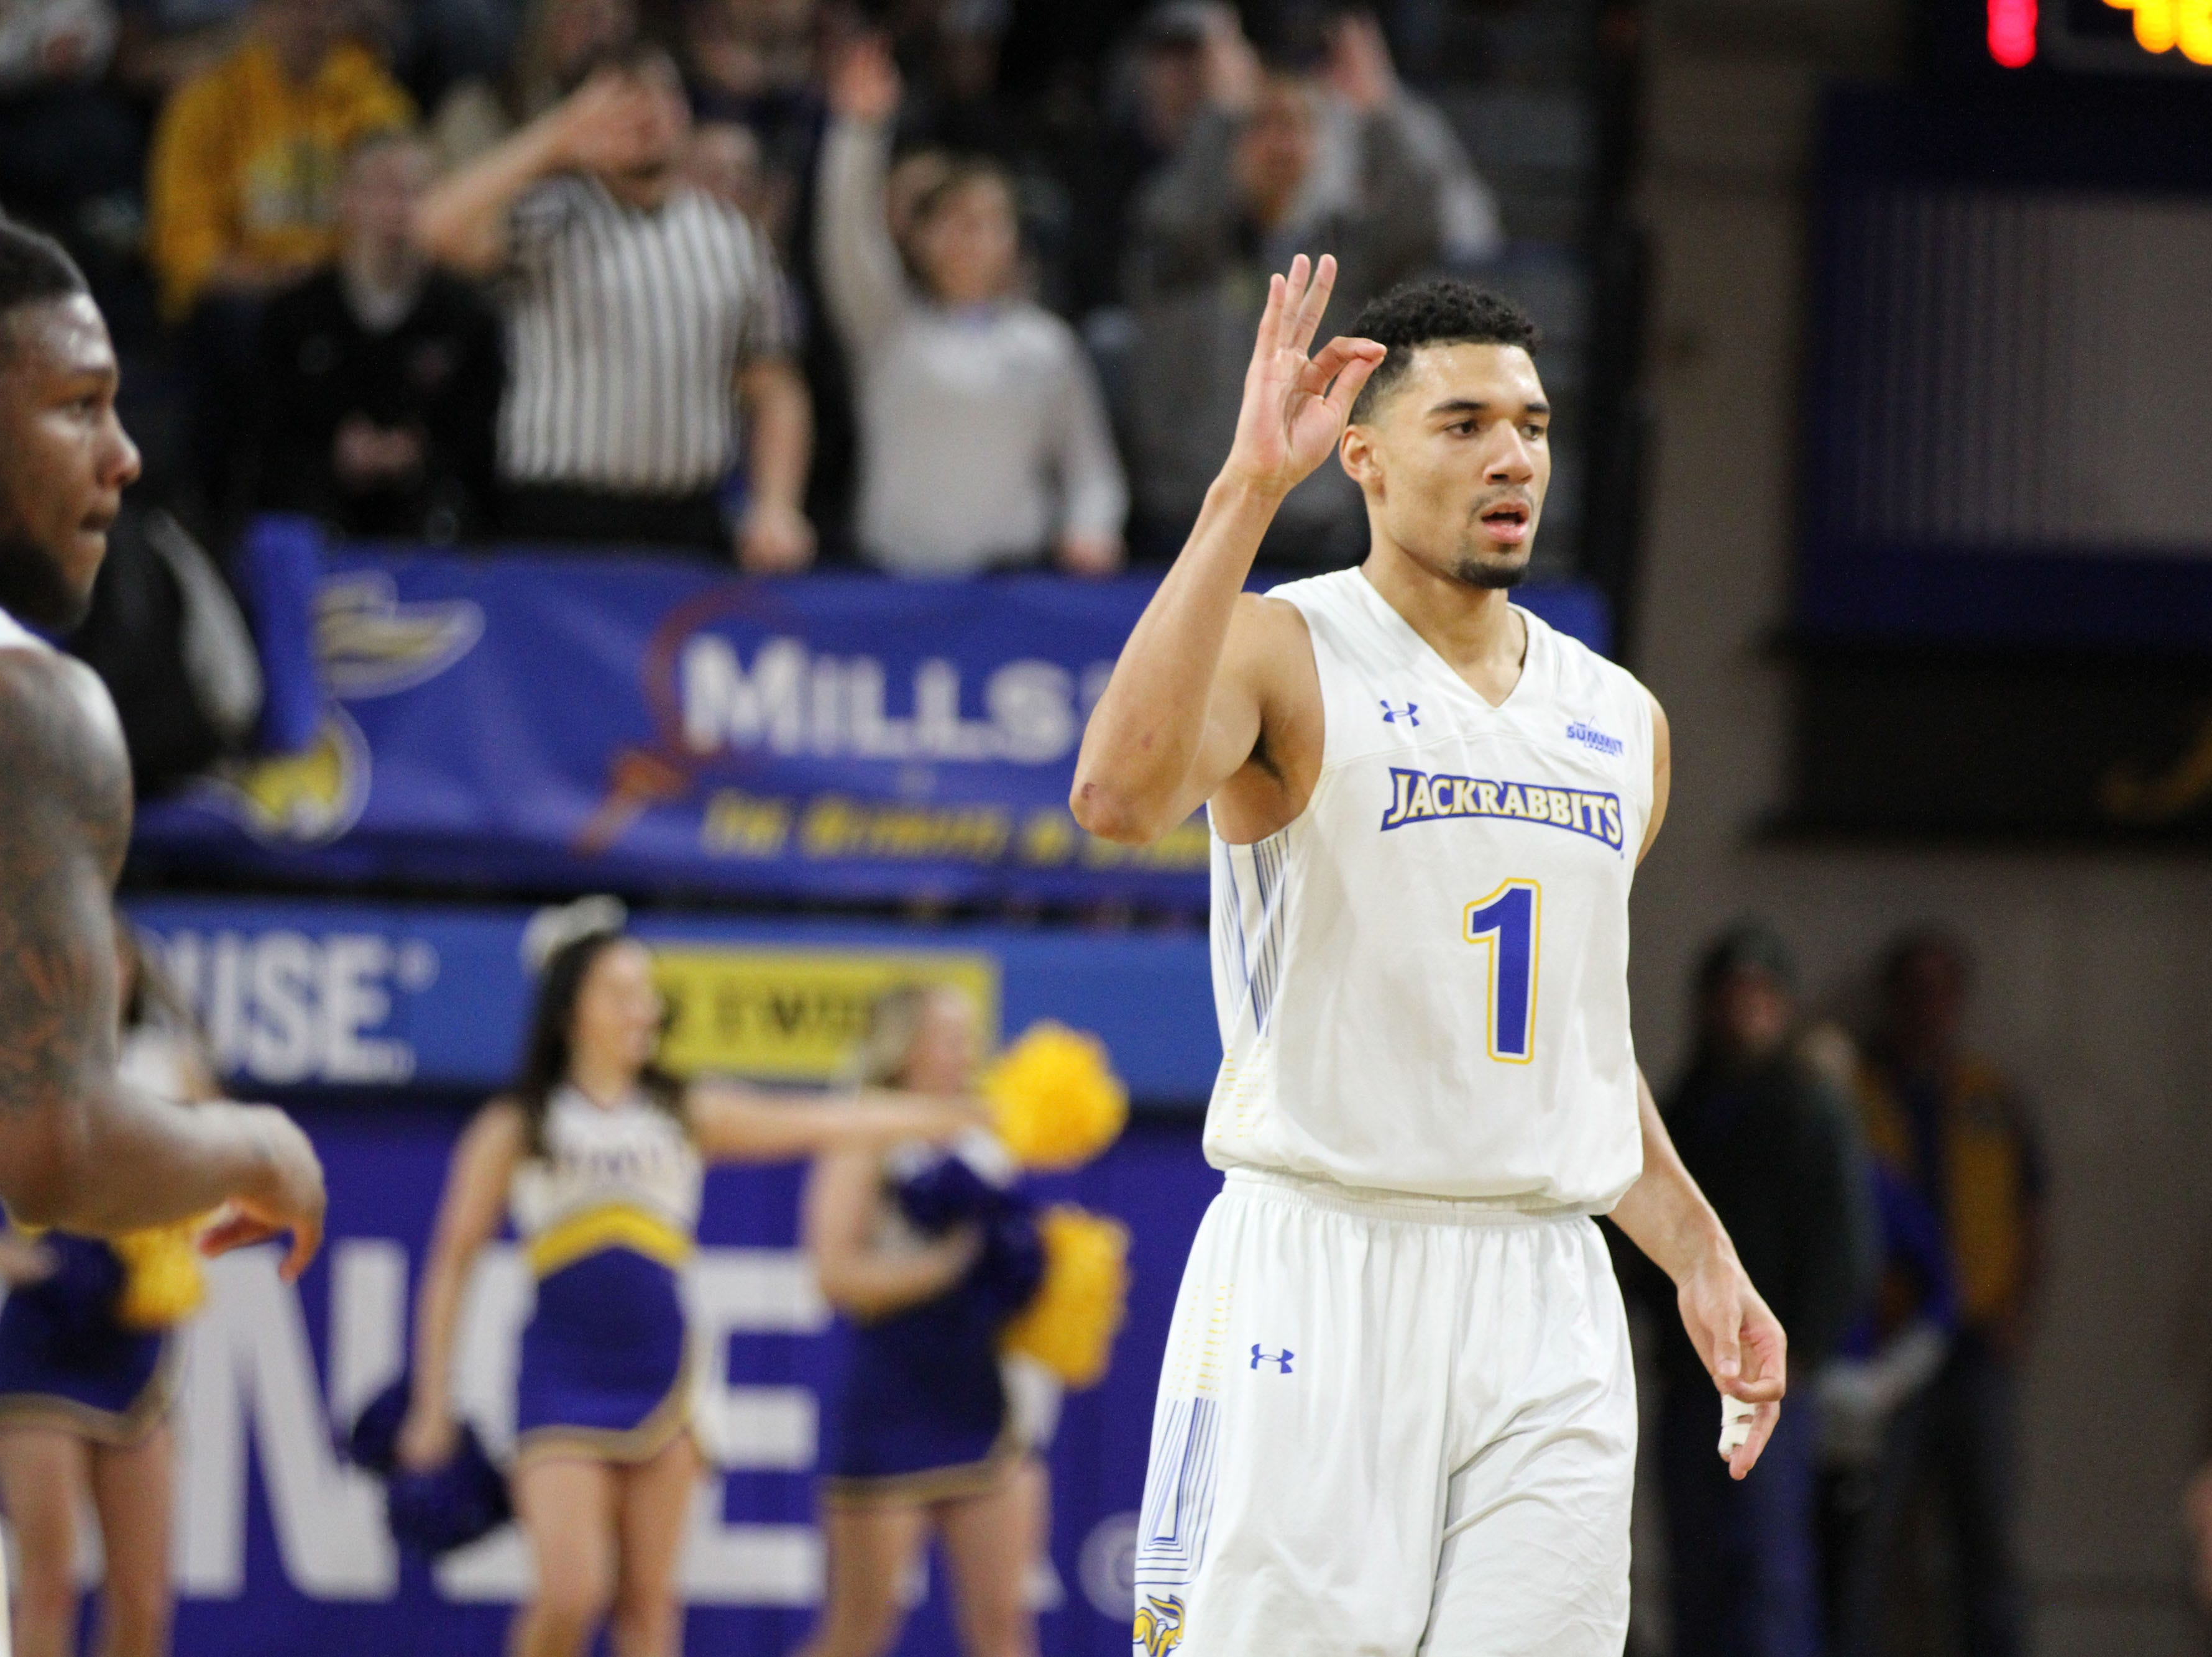 South Dakota State's Skylar Flatten (1) celebrates a made 3-pointer during the first half of the Jackrabbits' matchup with Oral Roberts Saturday afternoon at Frost Arena in Brookings.